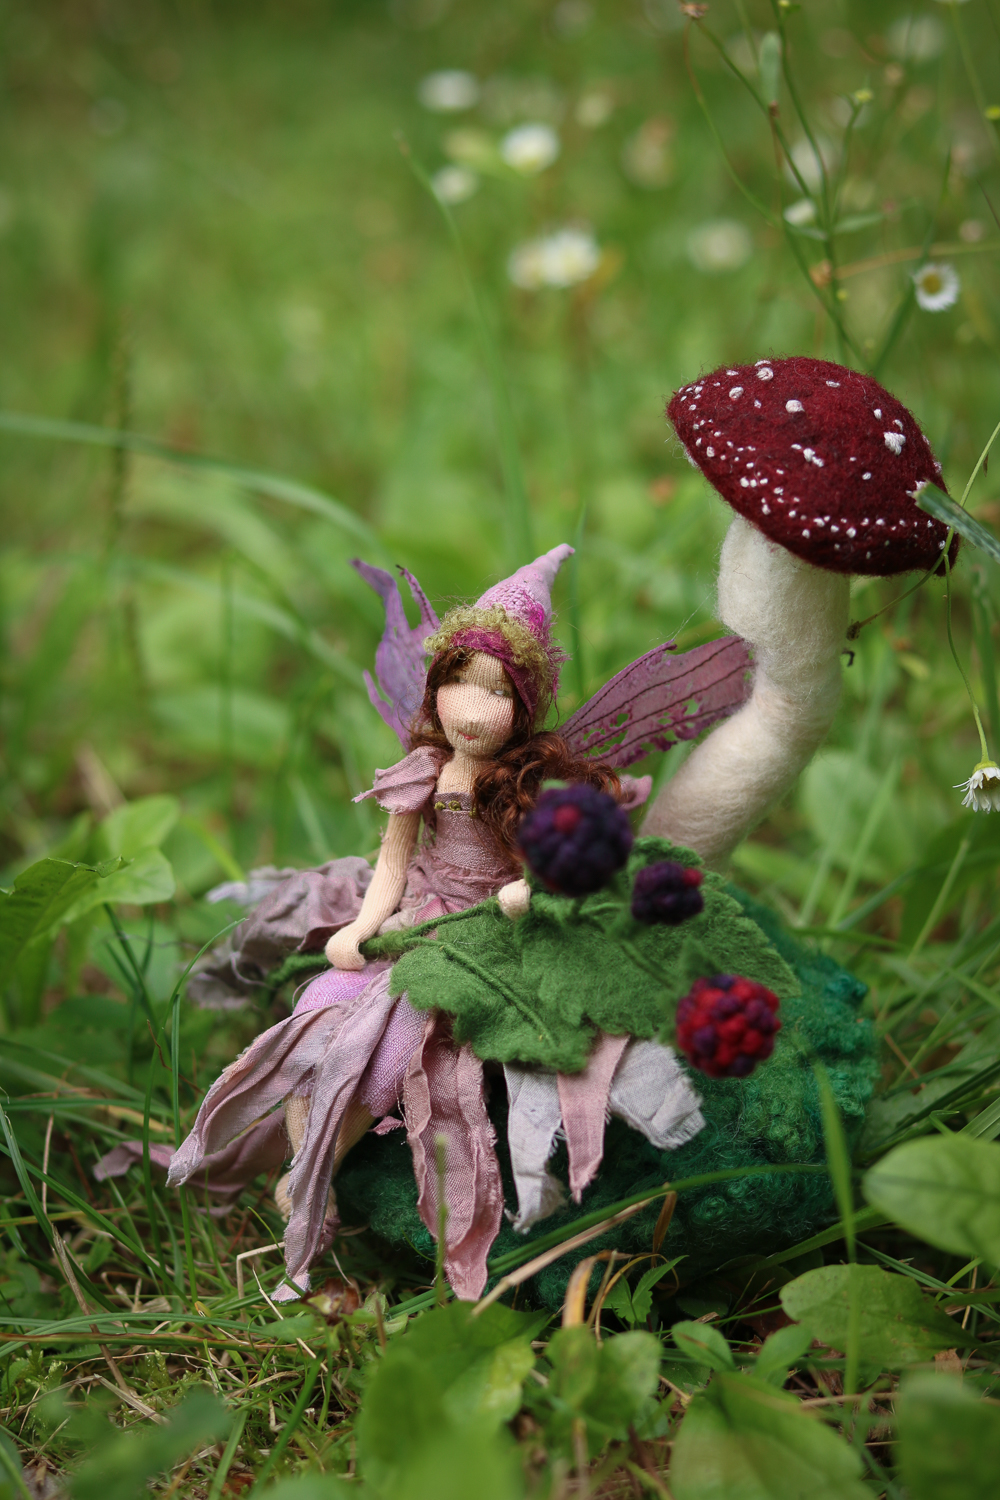 The Blackberry Faeries